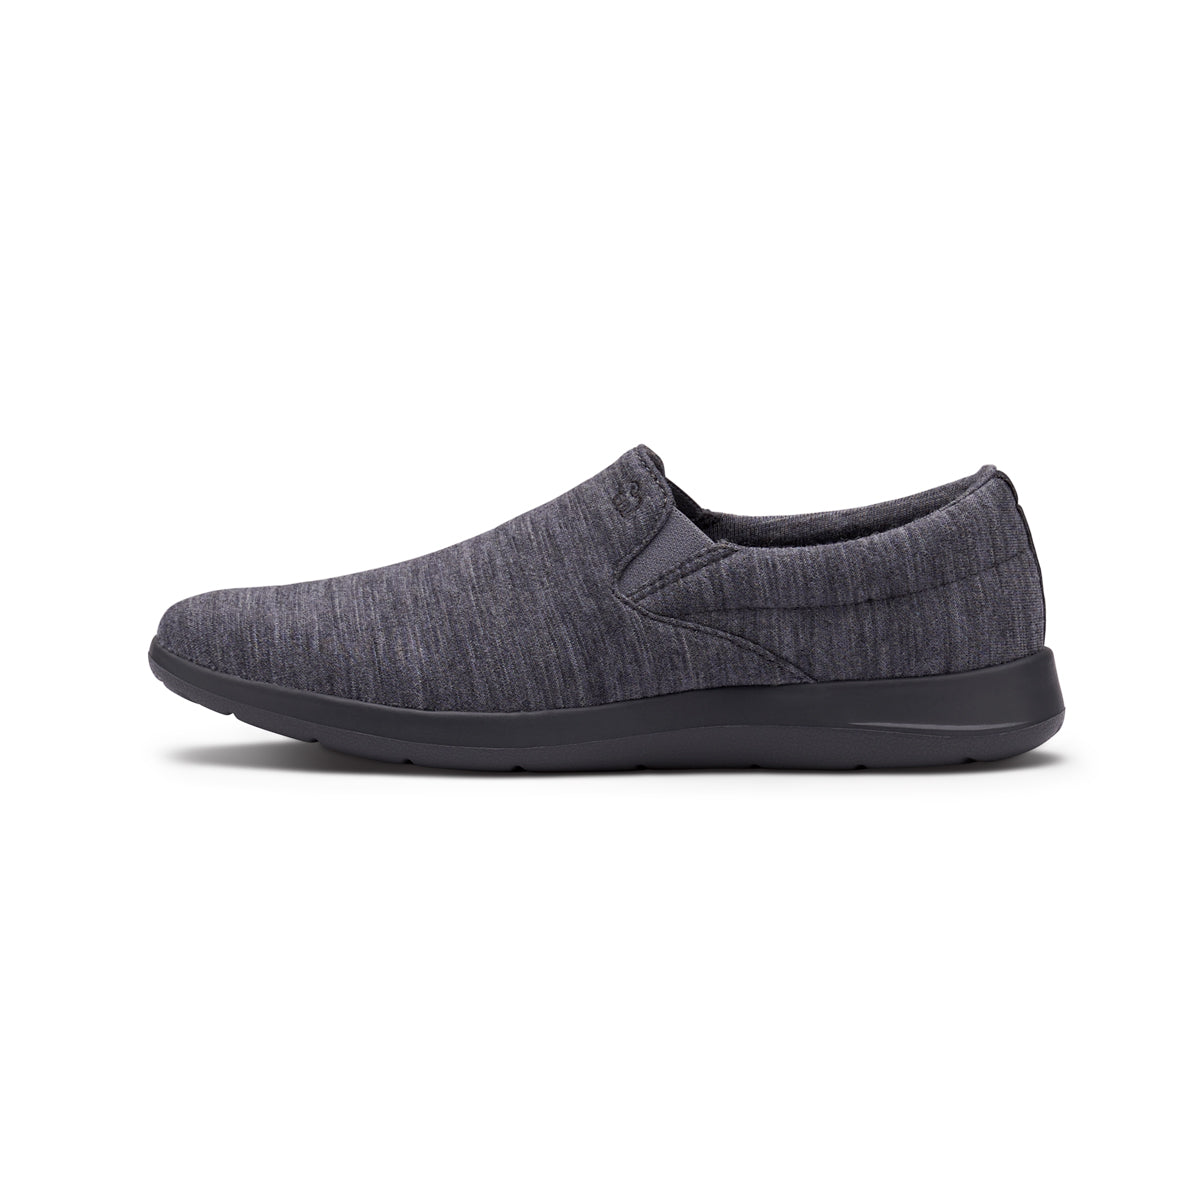 Women's Slip-Ons Dark Grey/Dark Grey